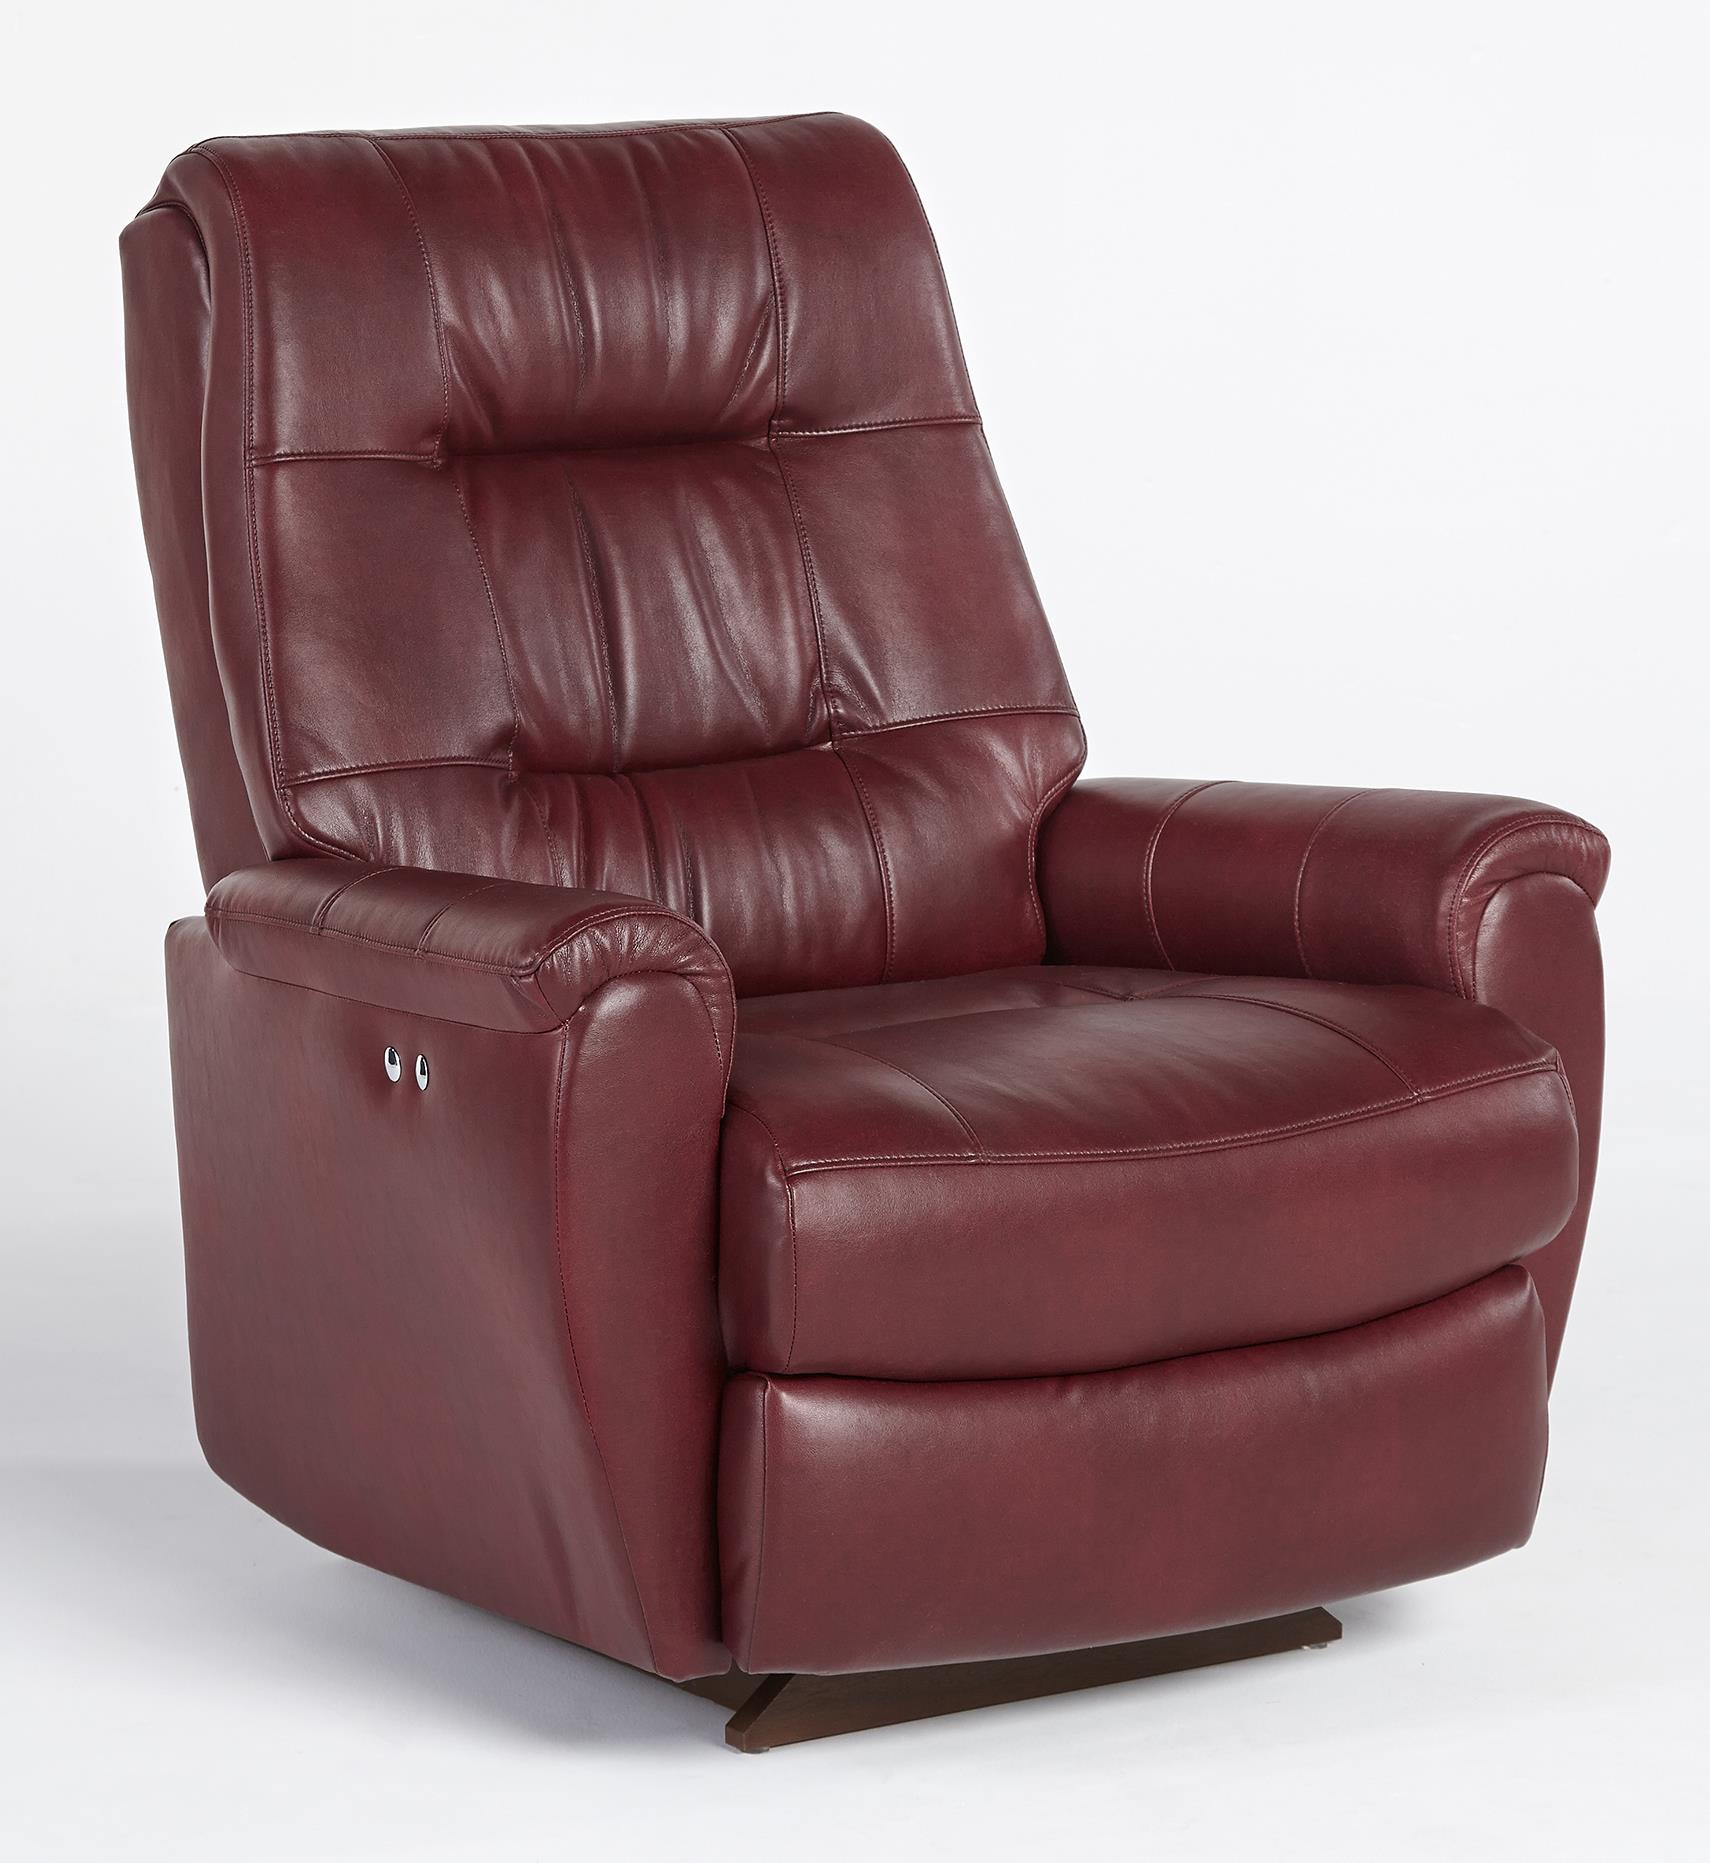 Best home furnishings recliners petite felicia swivel glider recliner with button tufted back - Fashionable recliners ...